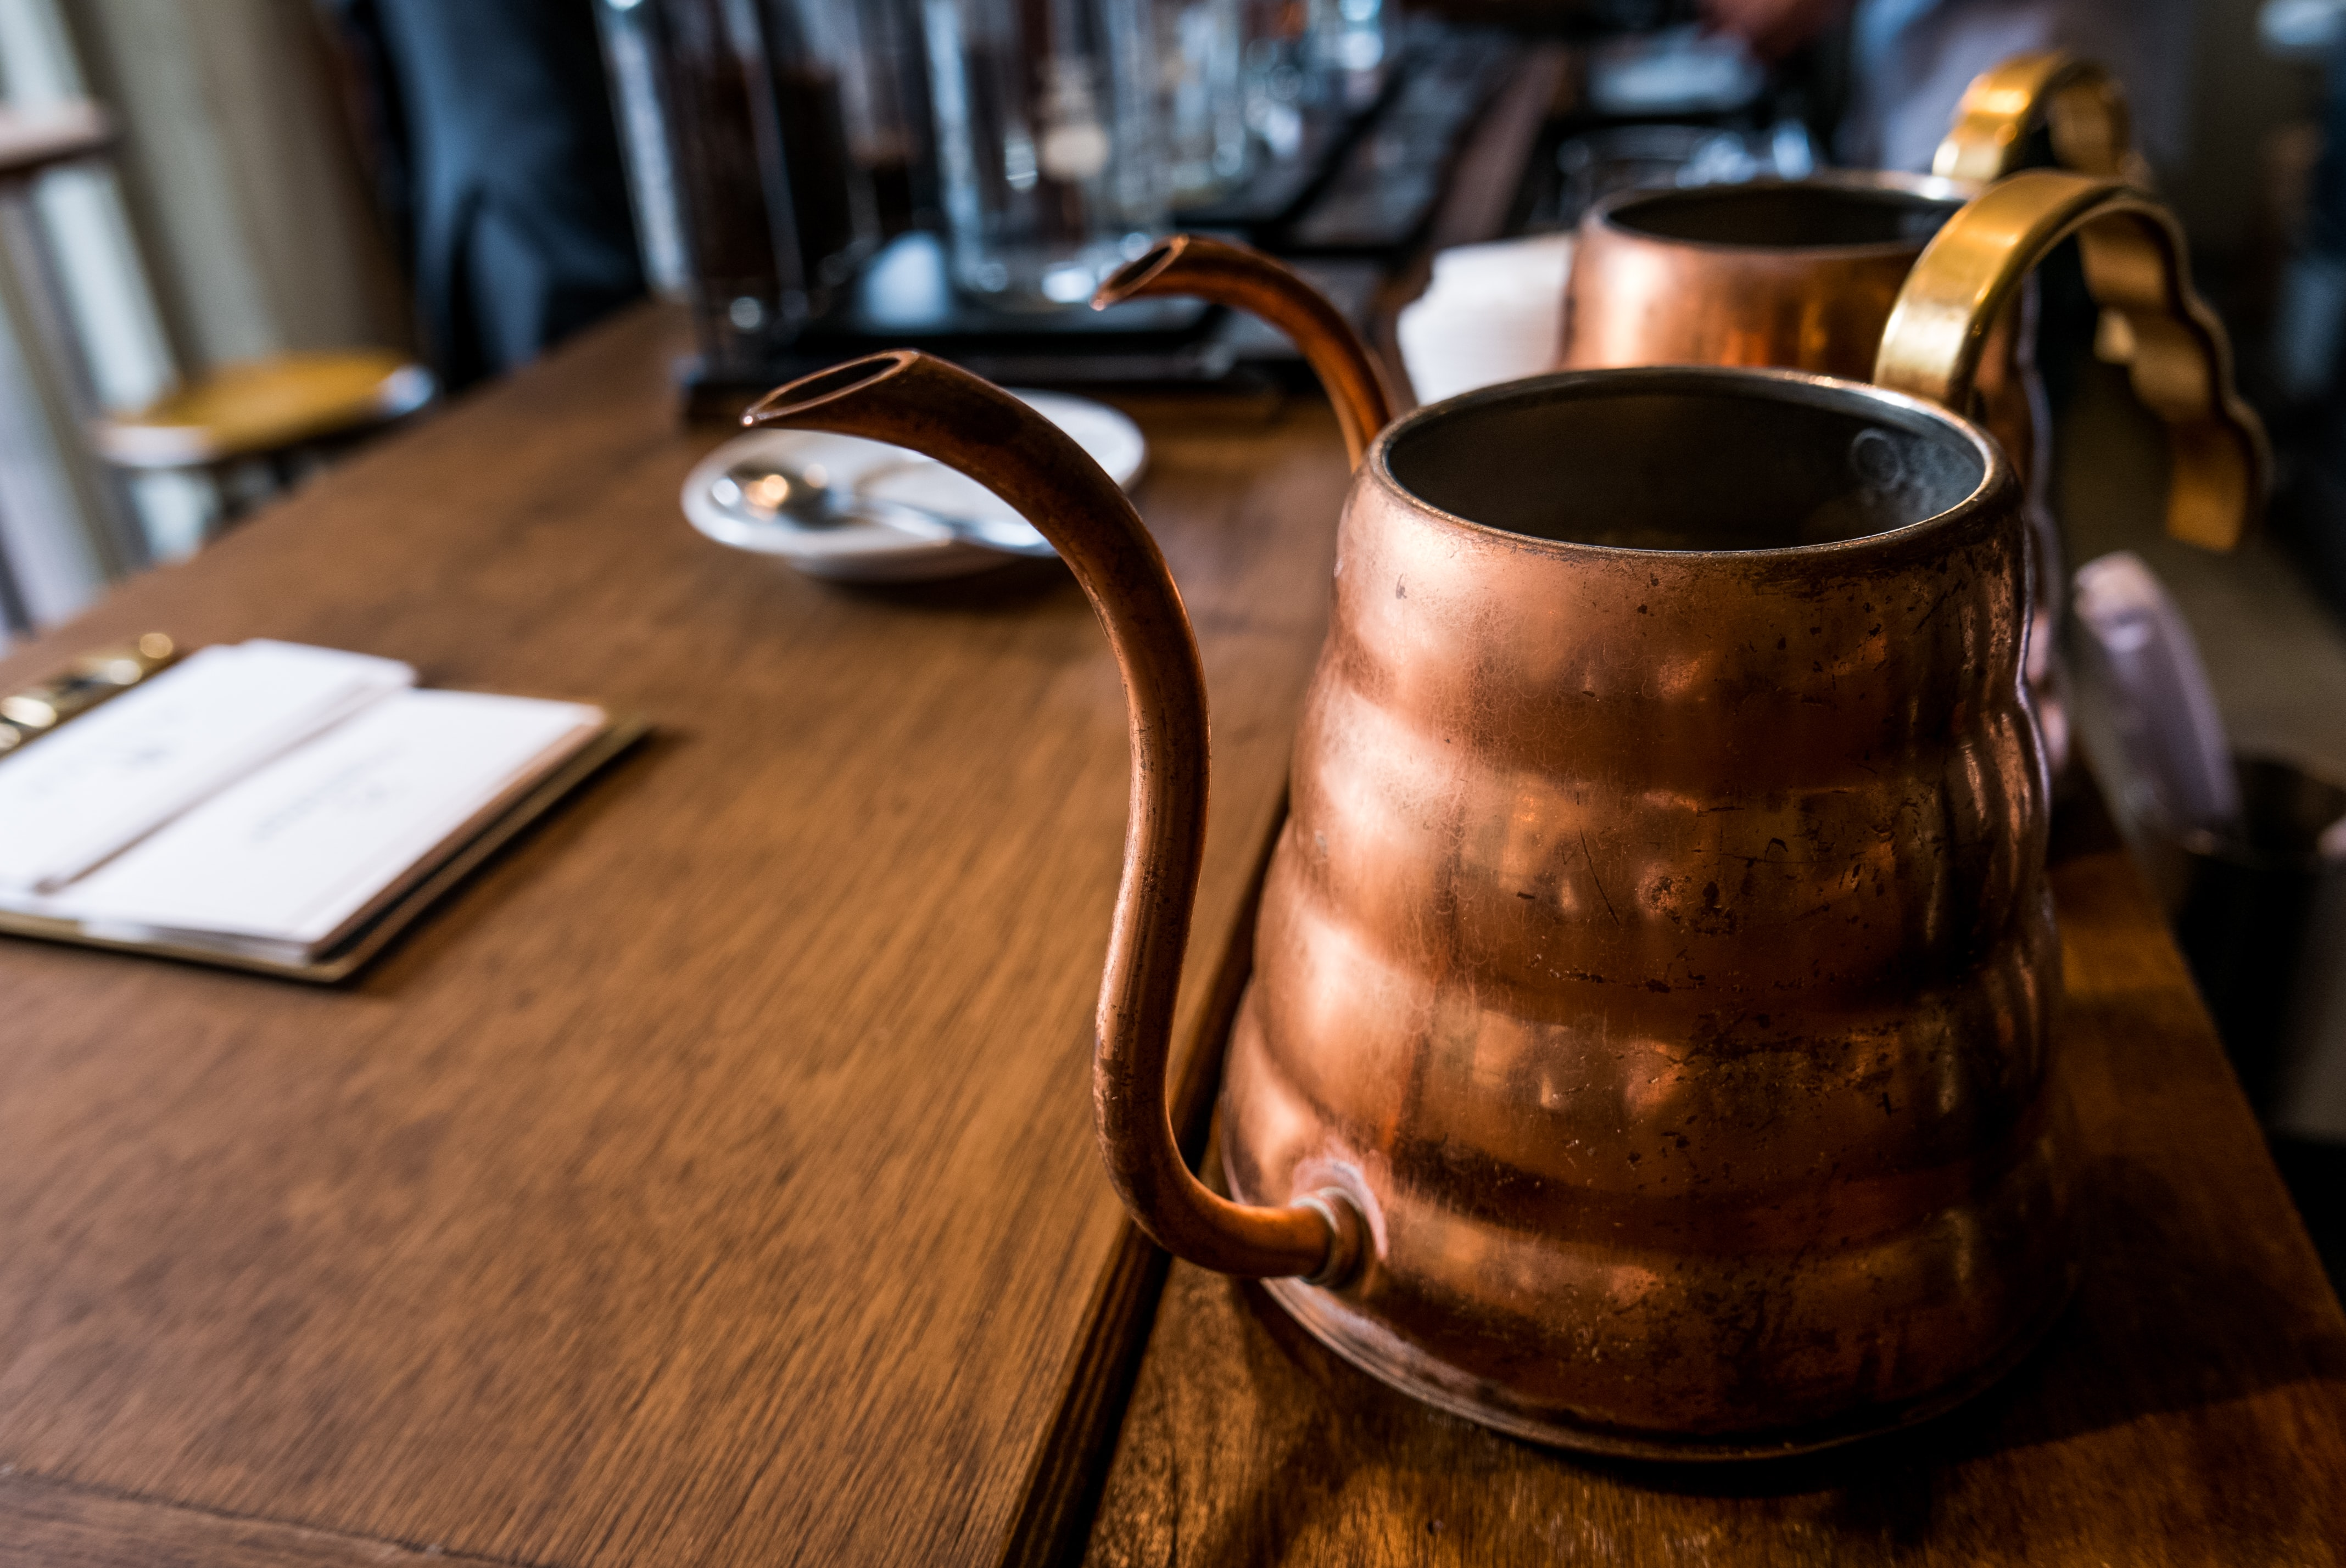 Copper tea kettles lined up on a wooden table with plates and menus alongside them